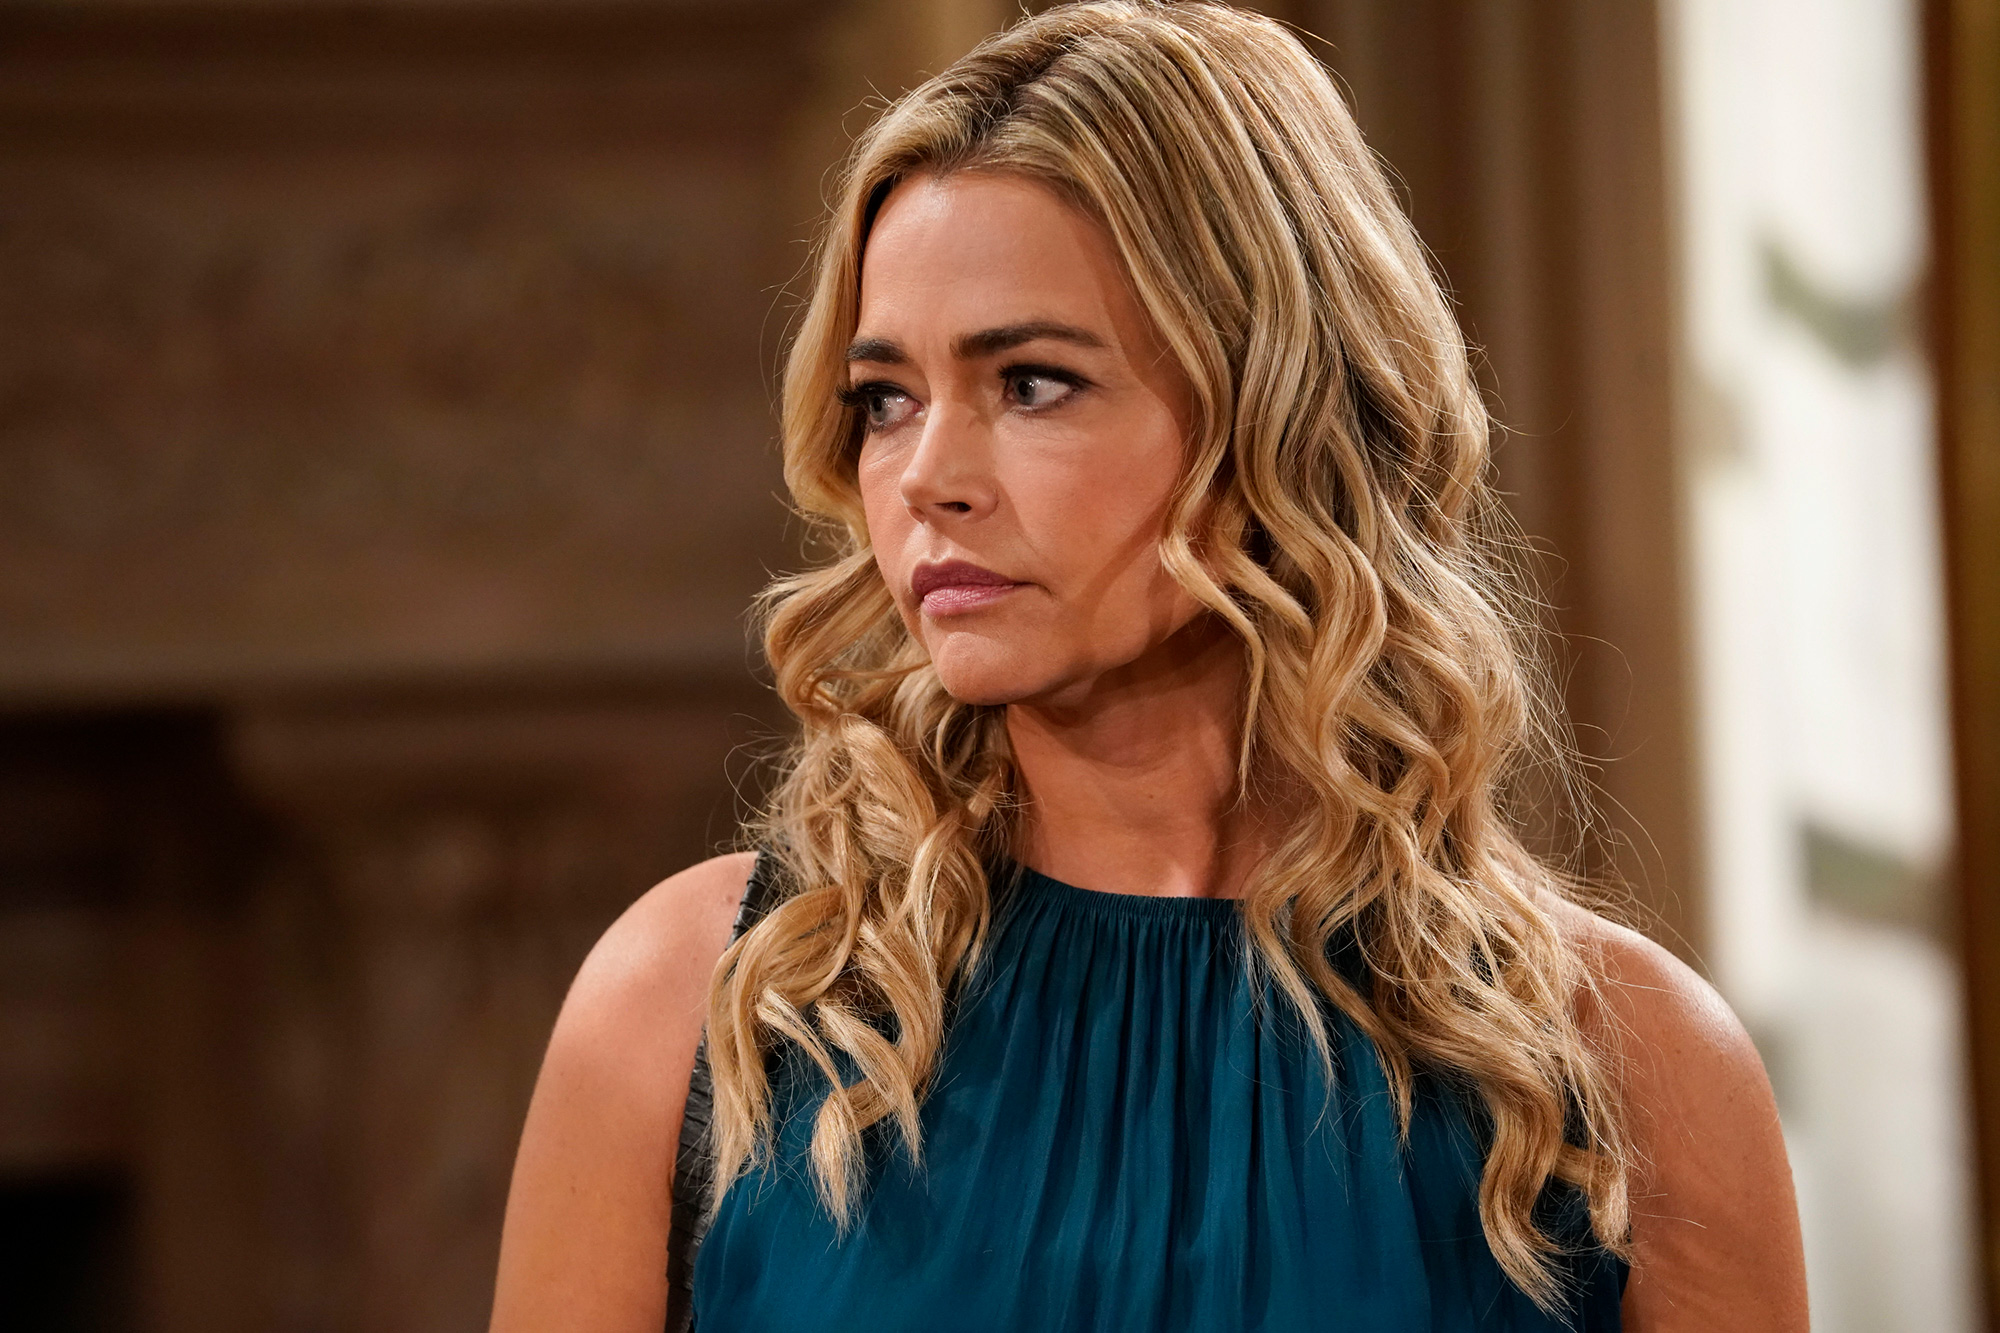 THE BOLD AND THE BEAUTIFUL, scheduled to air on the CBS Television Network April 15th, 2019. Pictured: Denise Richards